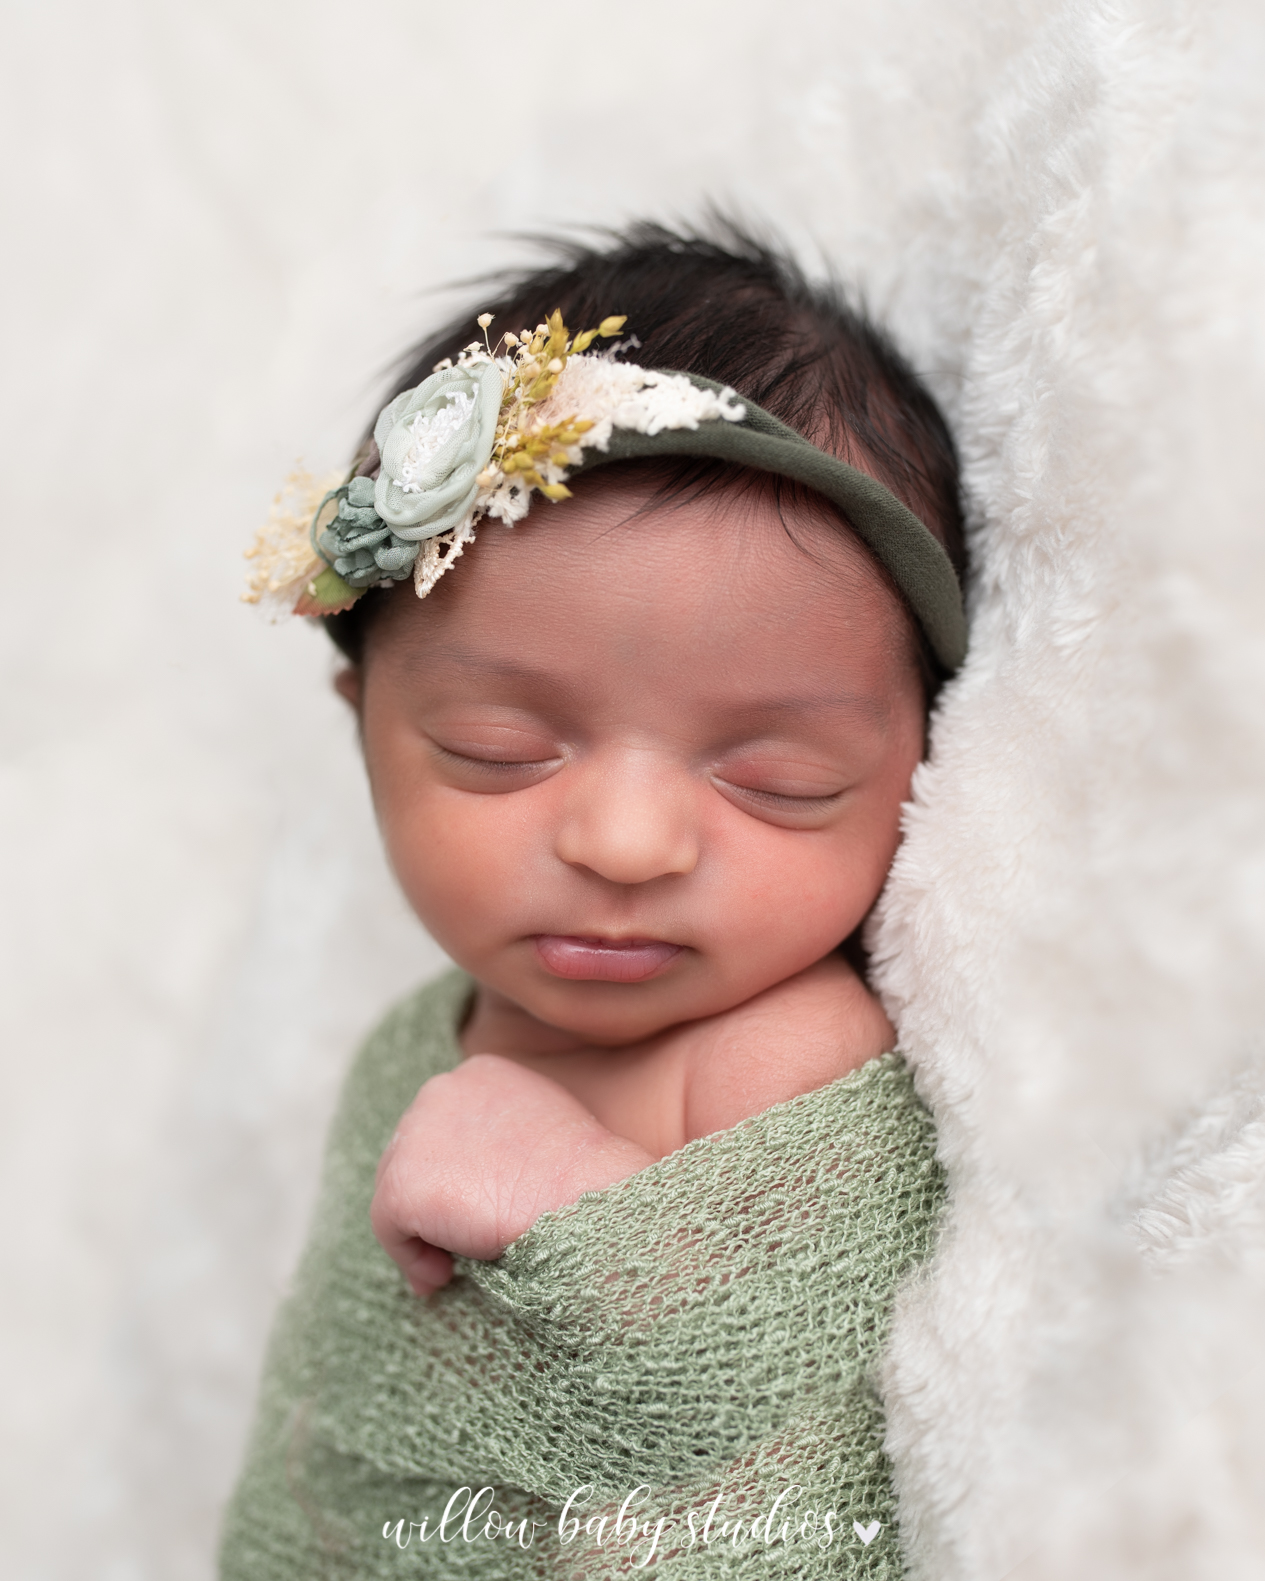 brookline-ma-newborn-photography-2.jpg